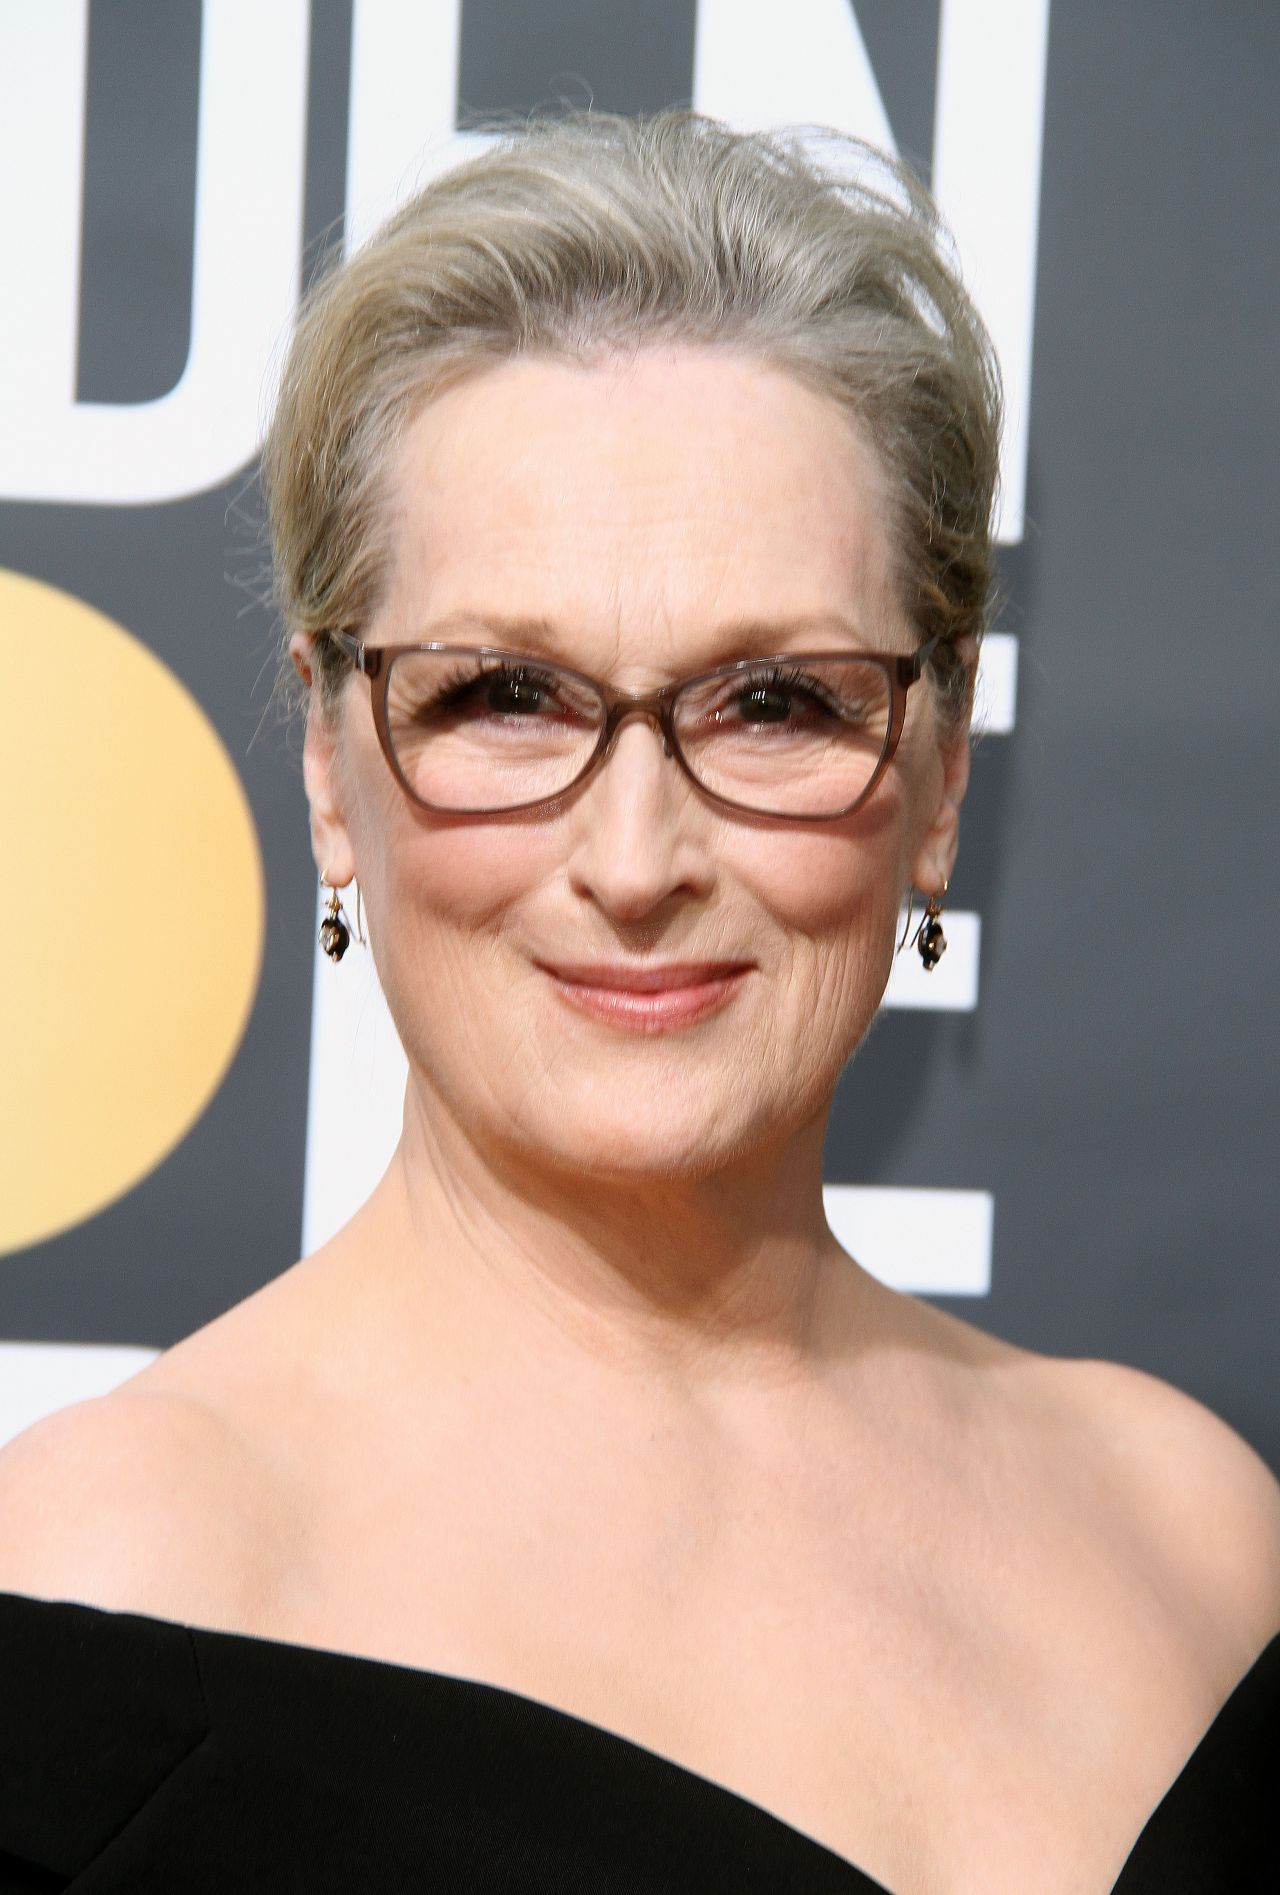 Meryl Streep Adds More #girlpower To The Cast of 'Big Little Lies'.